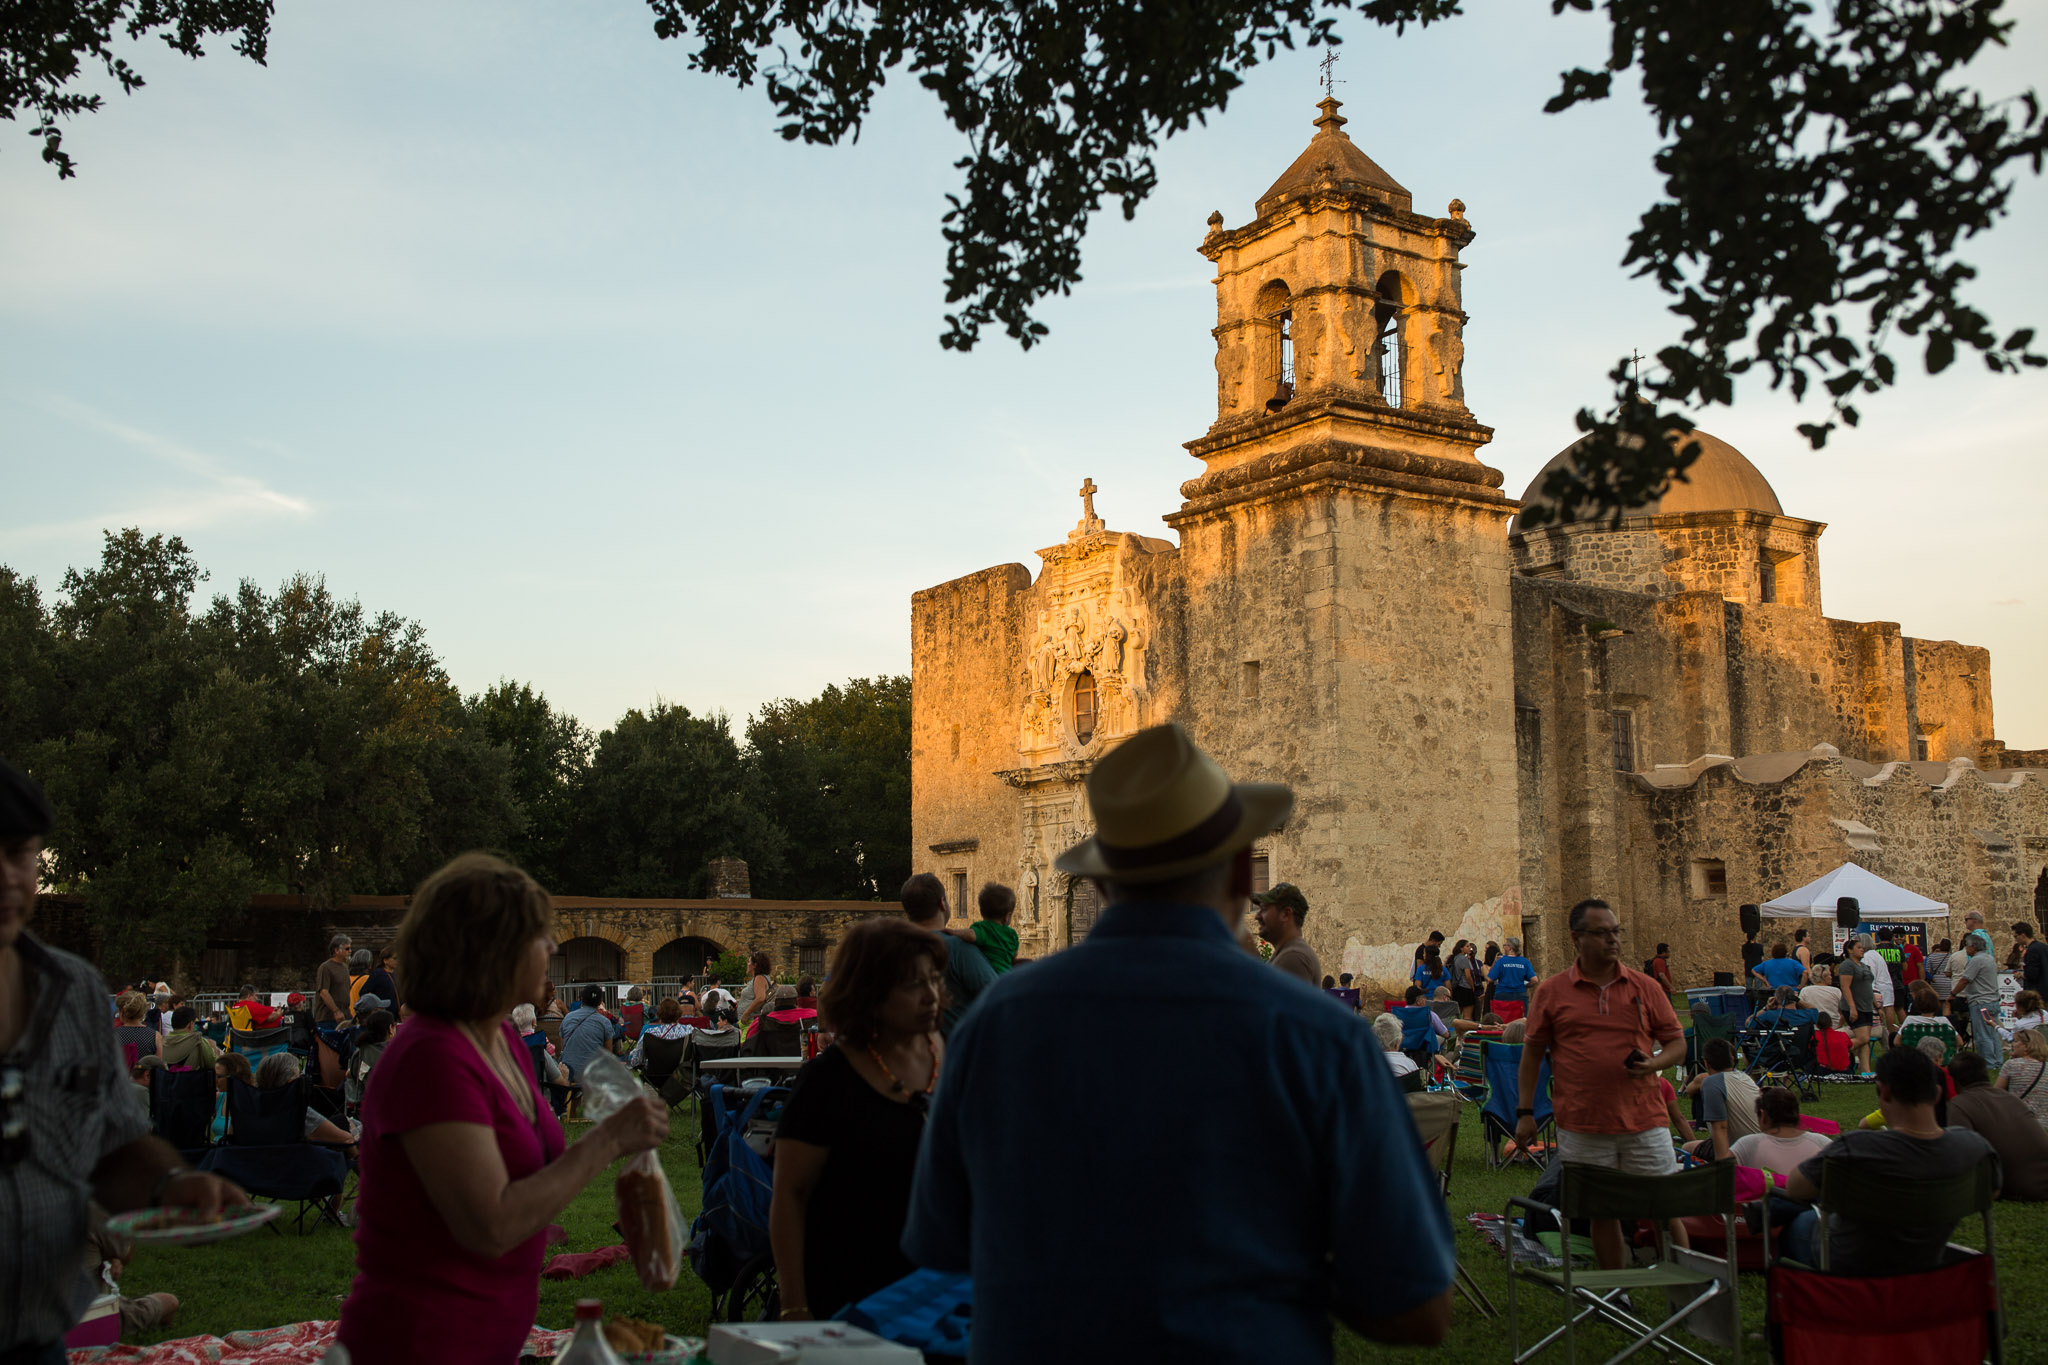 Hundreds gathered in front of Mission San José during the Restored by Light event. Photo by Scott Ball.